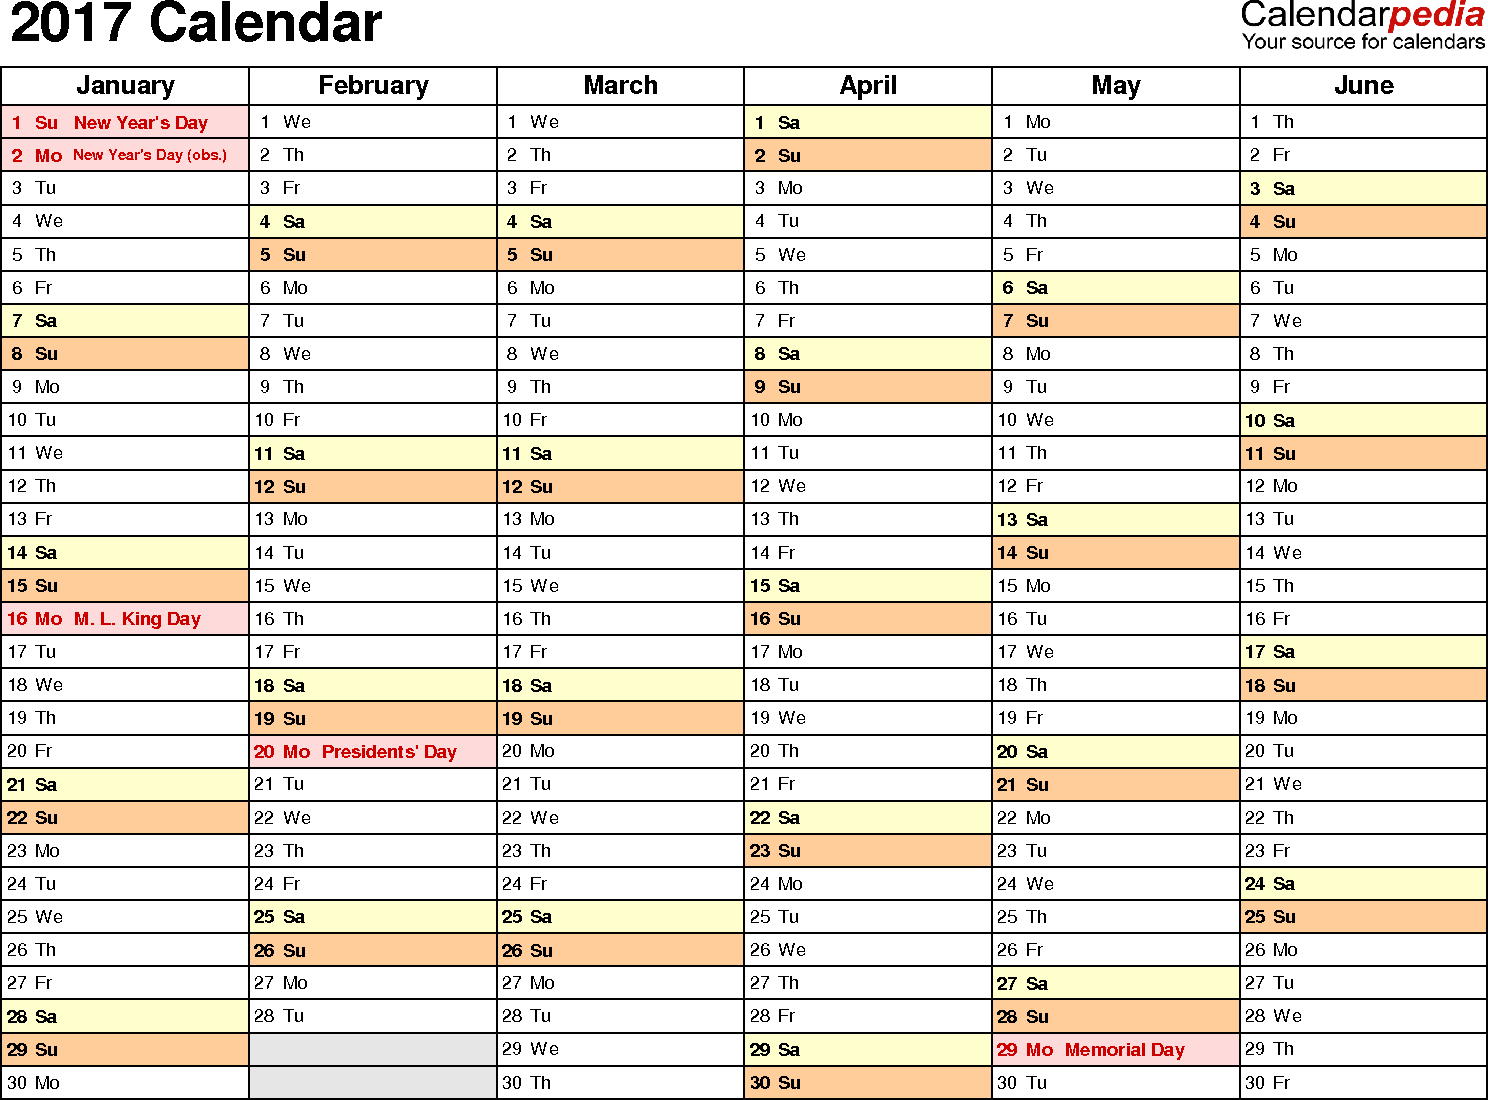 Ediblewildsus  Sweet  Calendar  Download  Free Printable Excel Templates Xls With Remarkable Template   Calendar For Excel Months Horizontally  Pages Landscape Orientation With Appealing Excel Header And Footer Also Count Highlighted Cells In Excel In Addition Excel Sum Shortcut And Excel Expense Tracker As Well As How To Print Excel Sheet Additionally Dynamic Named Range Excel From Calendarpediacom With Ediblewildsus  Remarkable  Calendar  Download  Free Printable Excel Templates Xls With Appealing Template   Calendar For Excel Months Horizontally  Pages Landscape Orientation And Sweet Excel Header And Footer Also Count Highlighted Cells In Excel In Addition Excel Sum Shortcut From Calendarpediacom